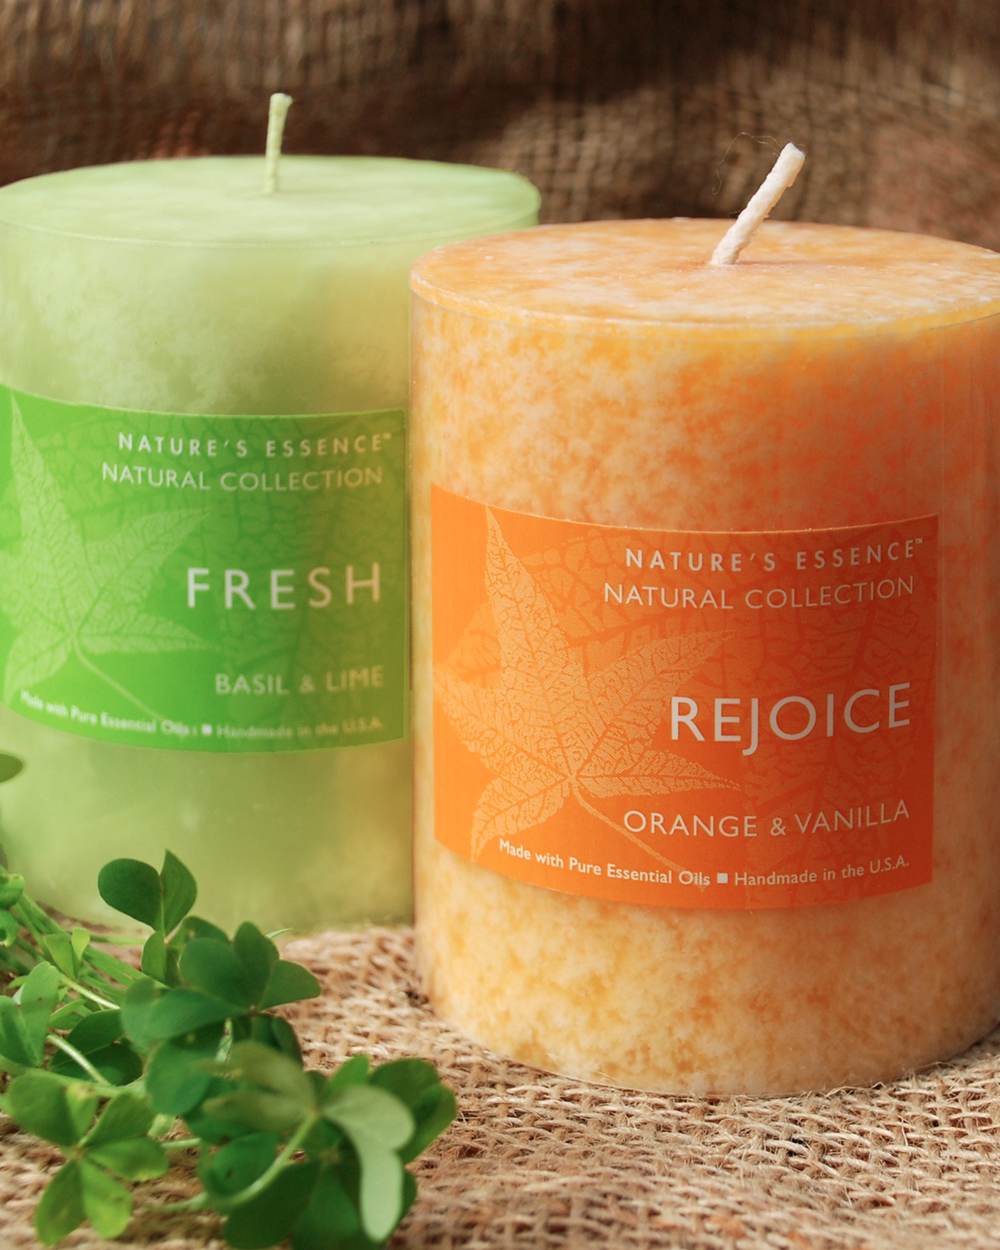 Natural Collection    Beauty and sophistication set this candle collection apart. Fragrantly scented with essential oils, these Spa quality candles are ideal to compliment a healthy, contemporary lifestyle.